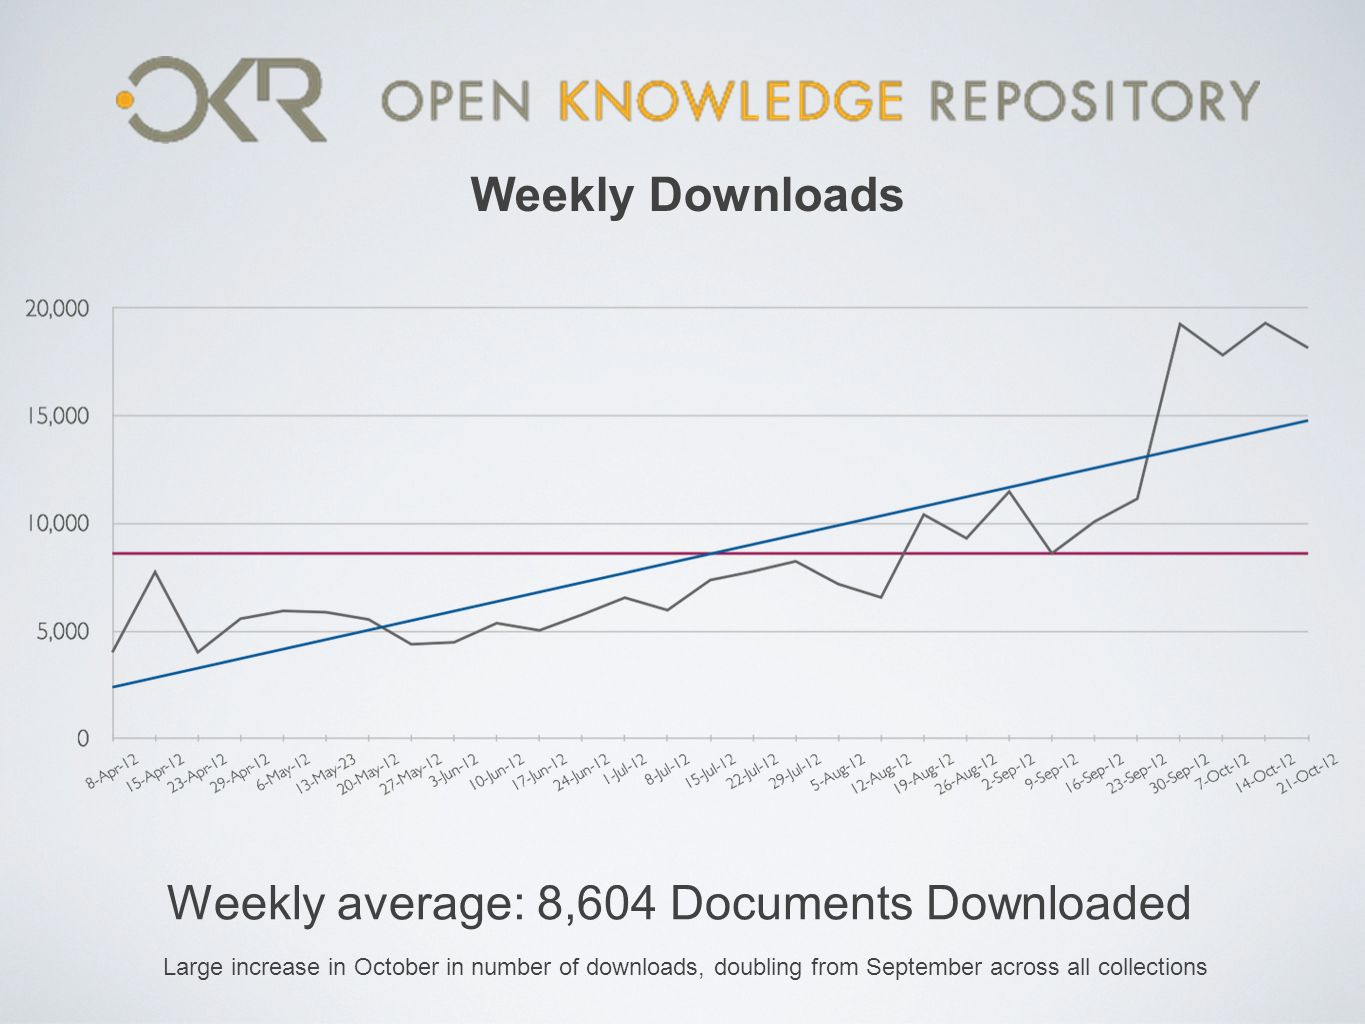 Weekly average: 8,604 Documents Downloaded